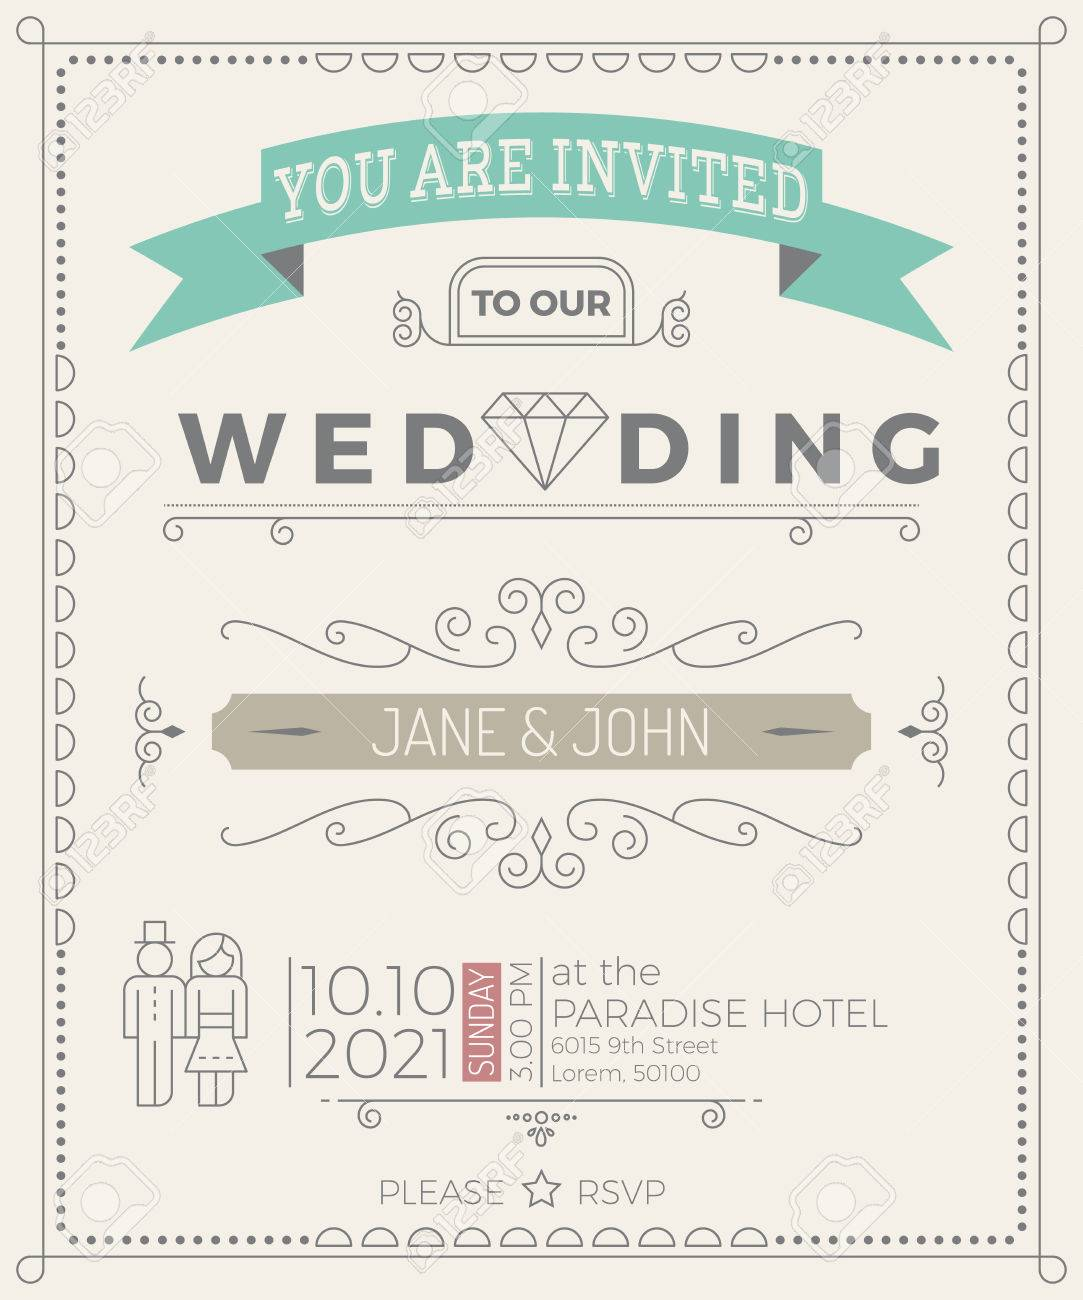 Vintage Wedding Invitation Card Template With Clean Simple